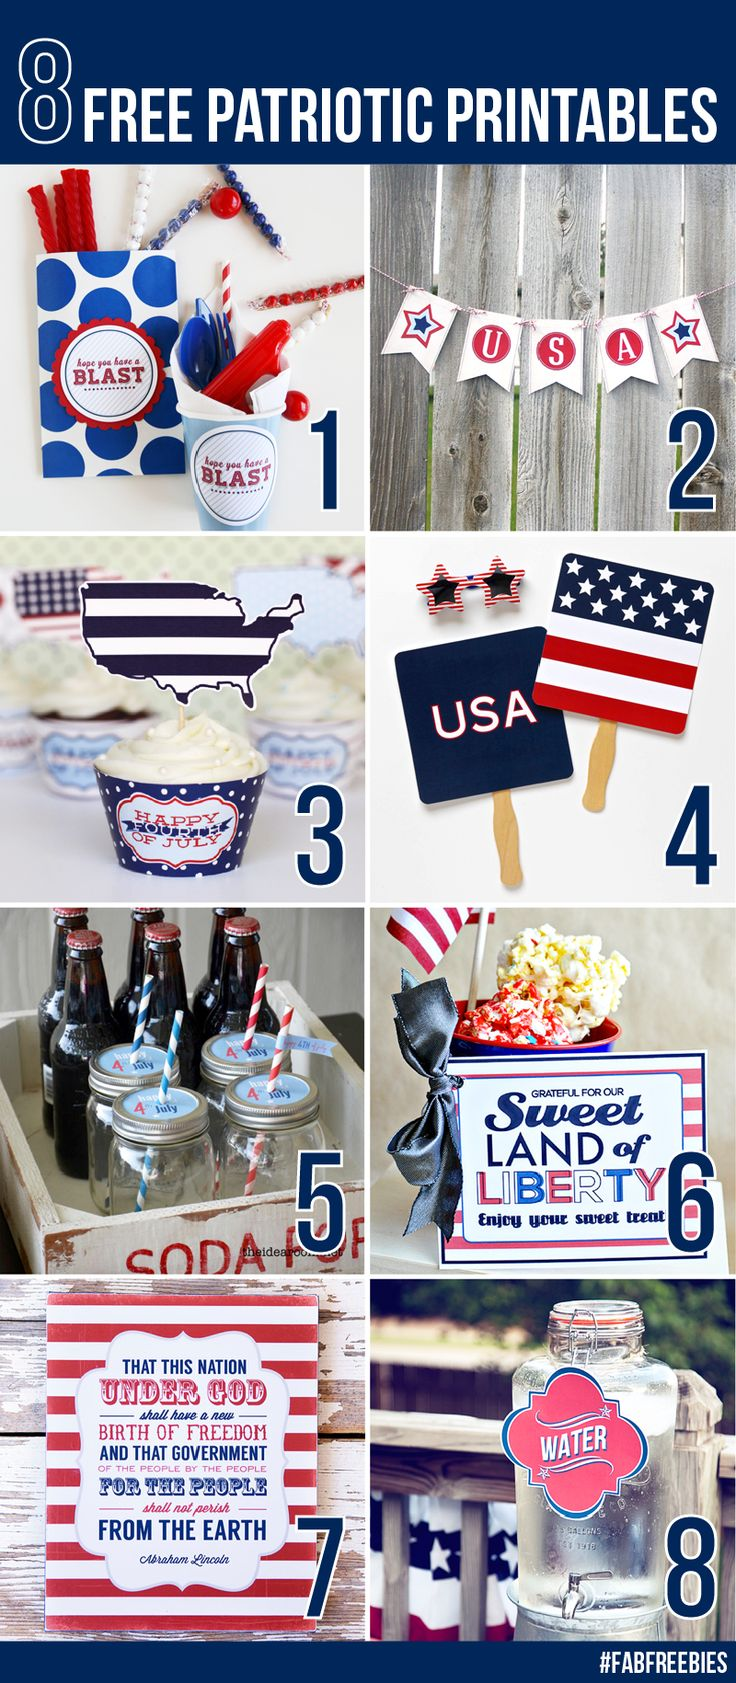 Independance Day Printables Thursday,   June 12, 2014 By Nikkala 1 Comment Independance Day Printables